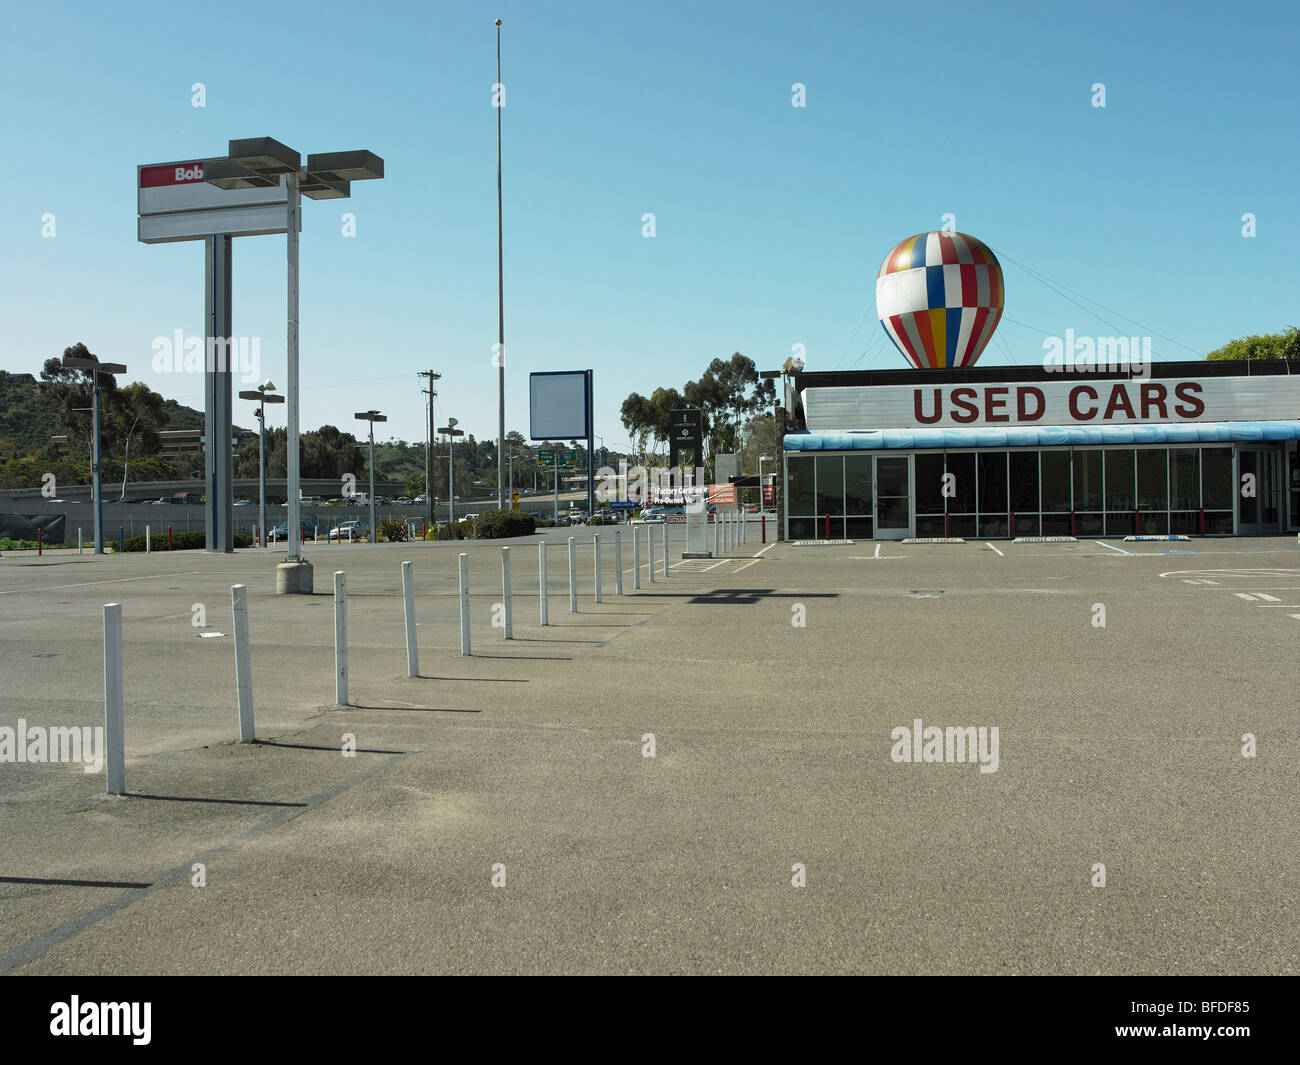 Out of business car dealership - Stock Image